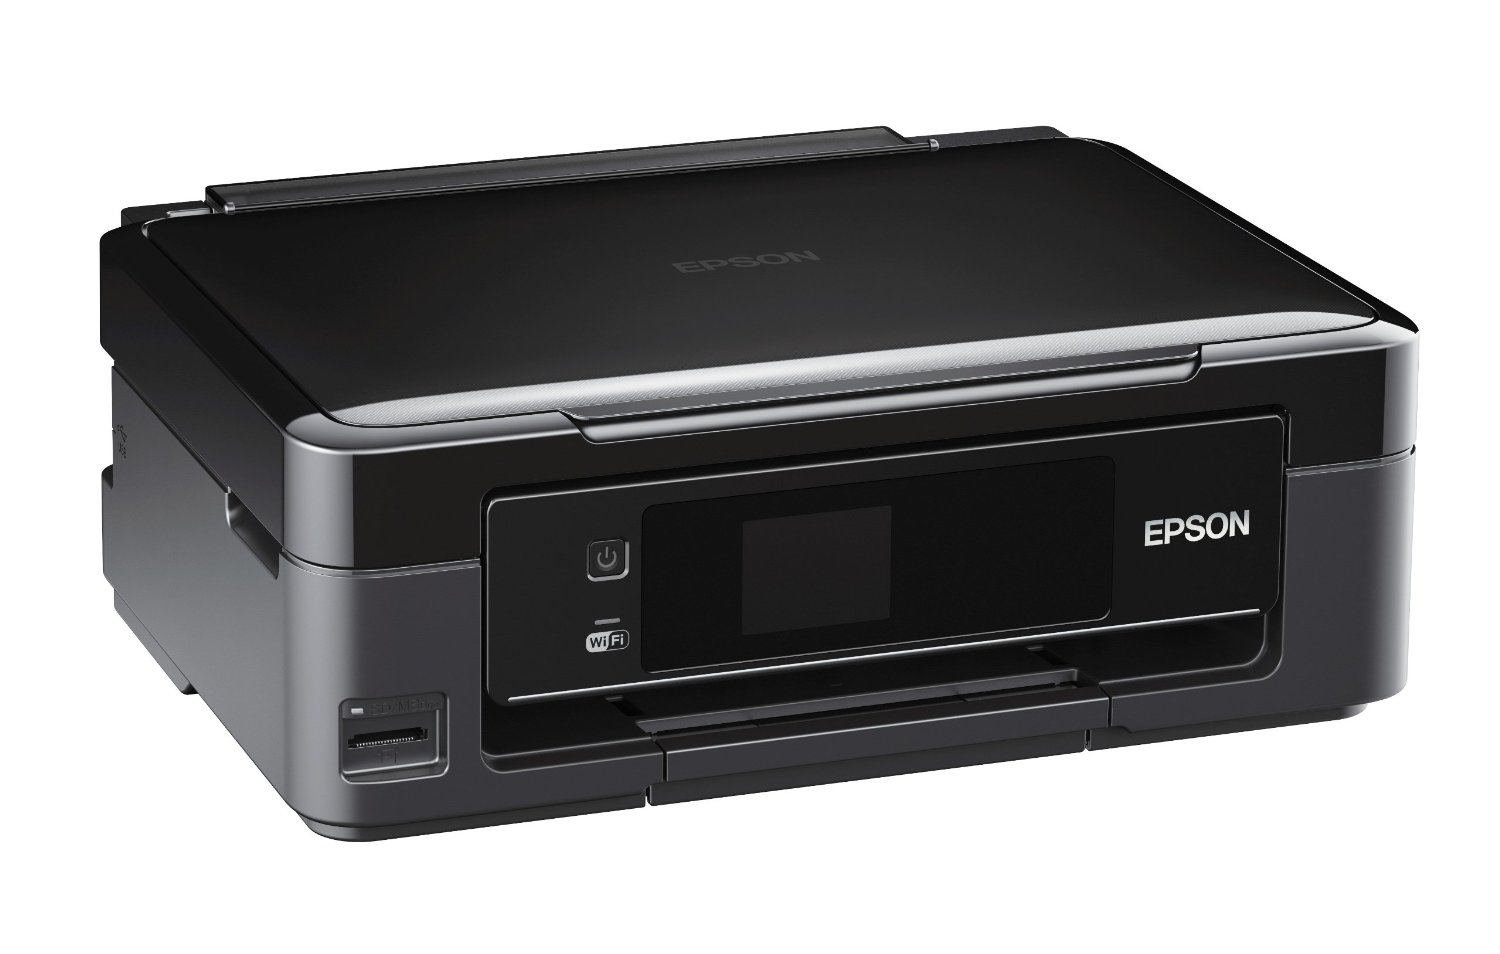 Epson XP Expression Home XP406 (C) NEW Printer Reset